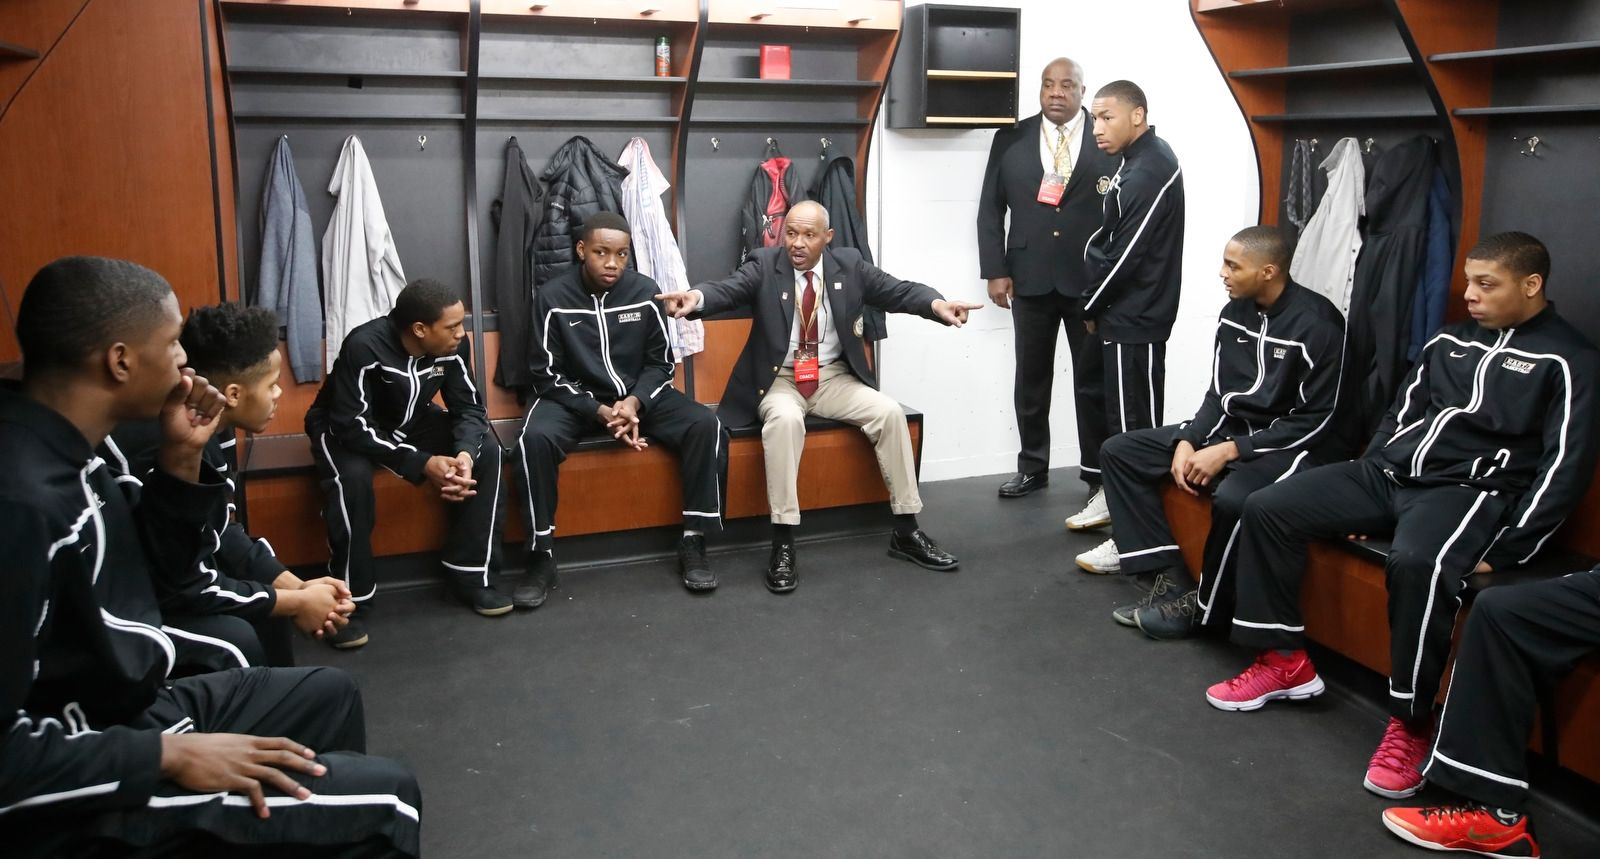 East coach Starling Bryant talks to his team in the locker room prior to playing Harrisville in the Class D semifinal of the the 2018 New York State Public High School Athletic Association boys basketball championship at the Floyd L. Maines Veteran Memorial Arena in Binghamton on Friday, March 16, 2018.